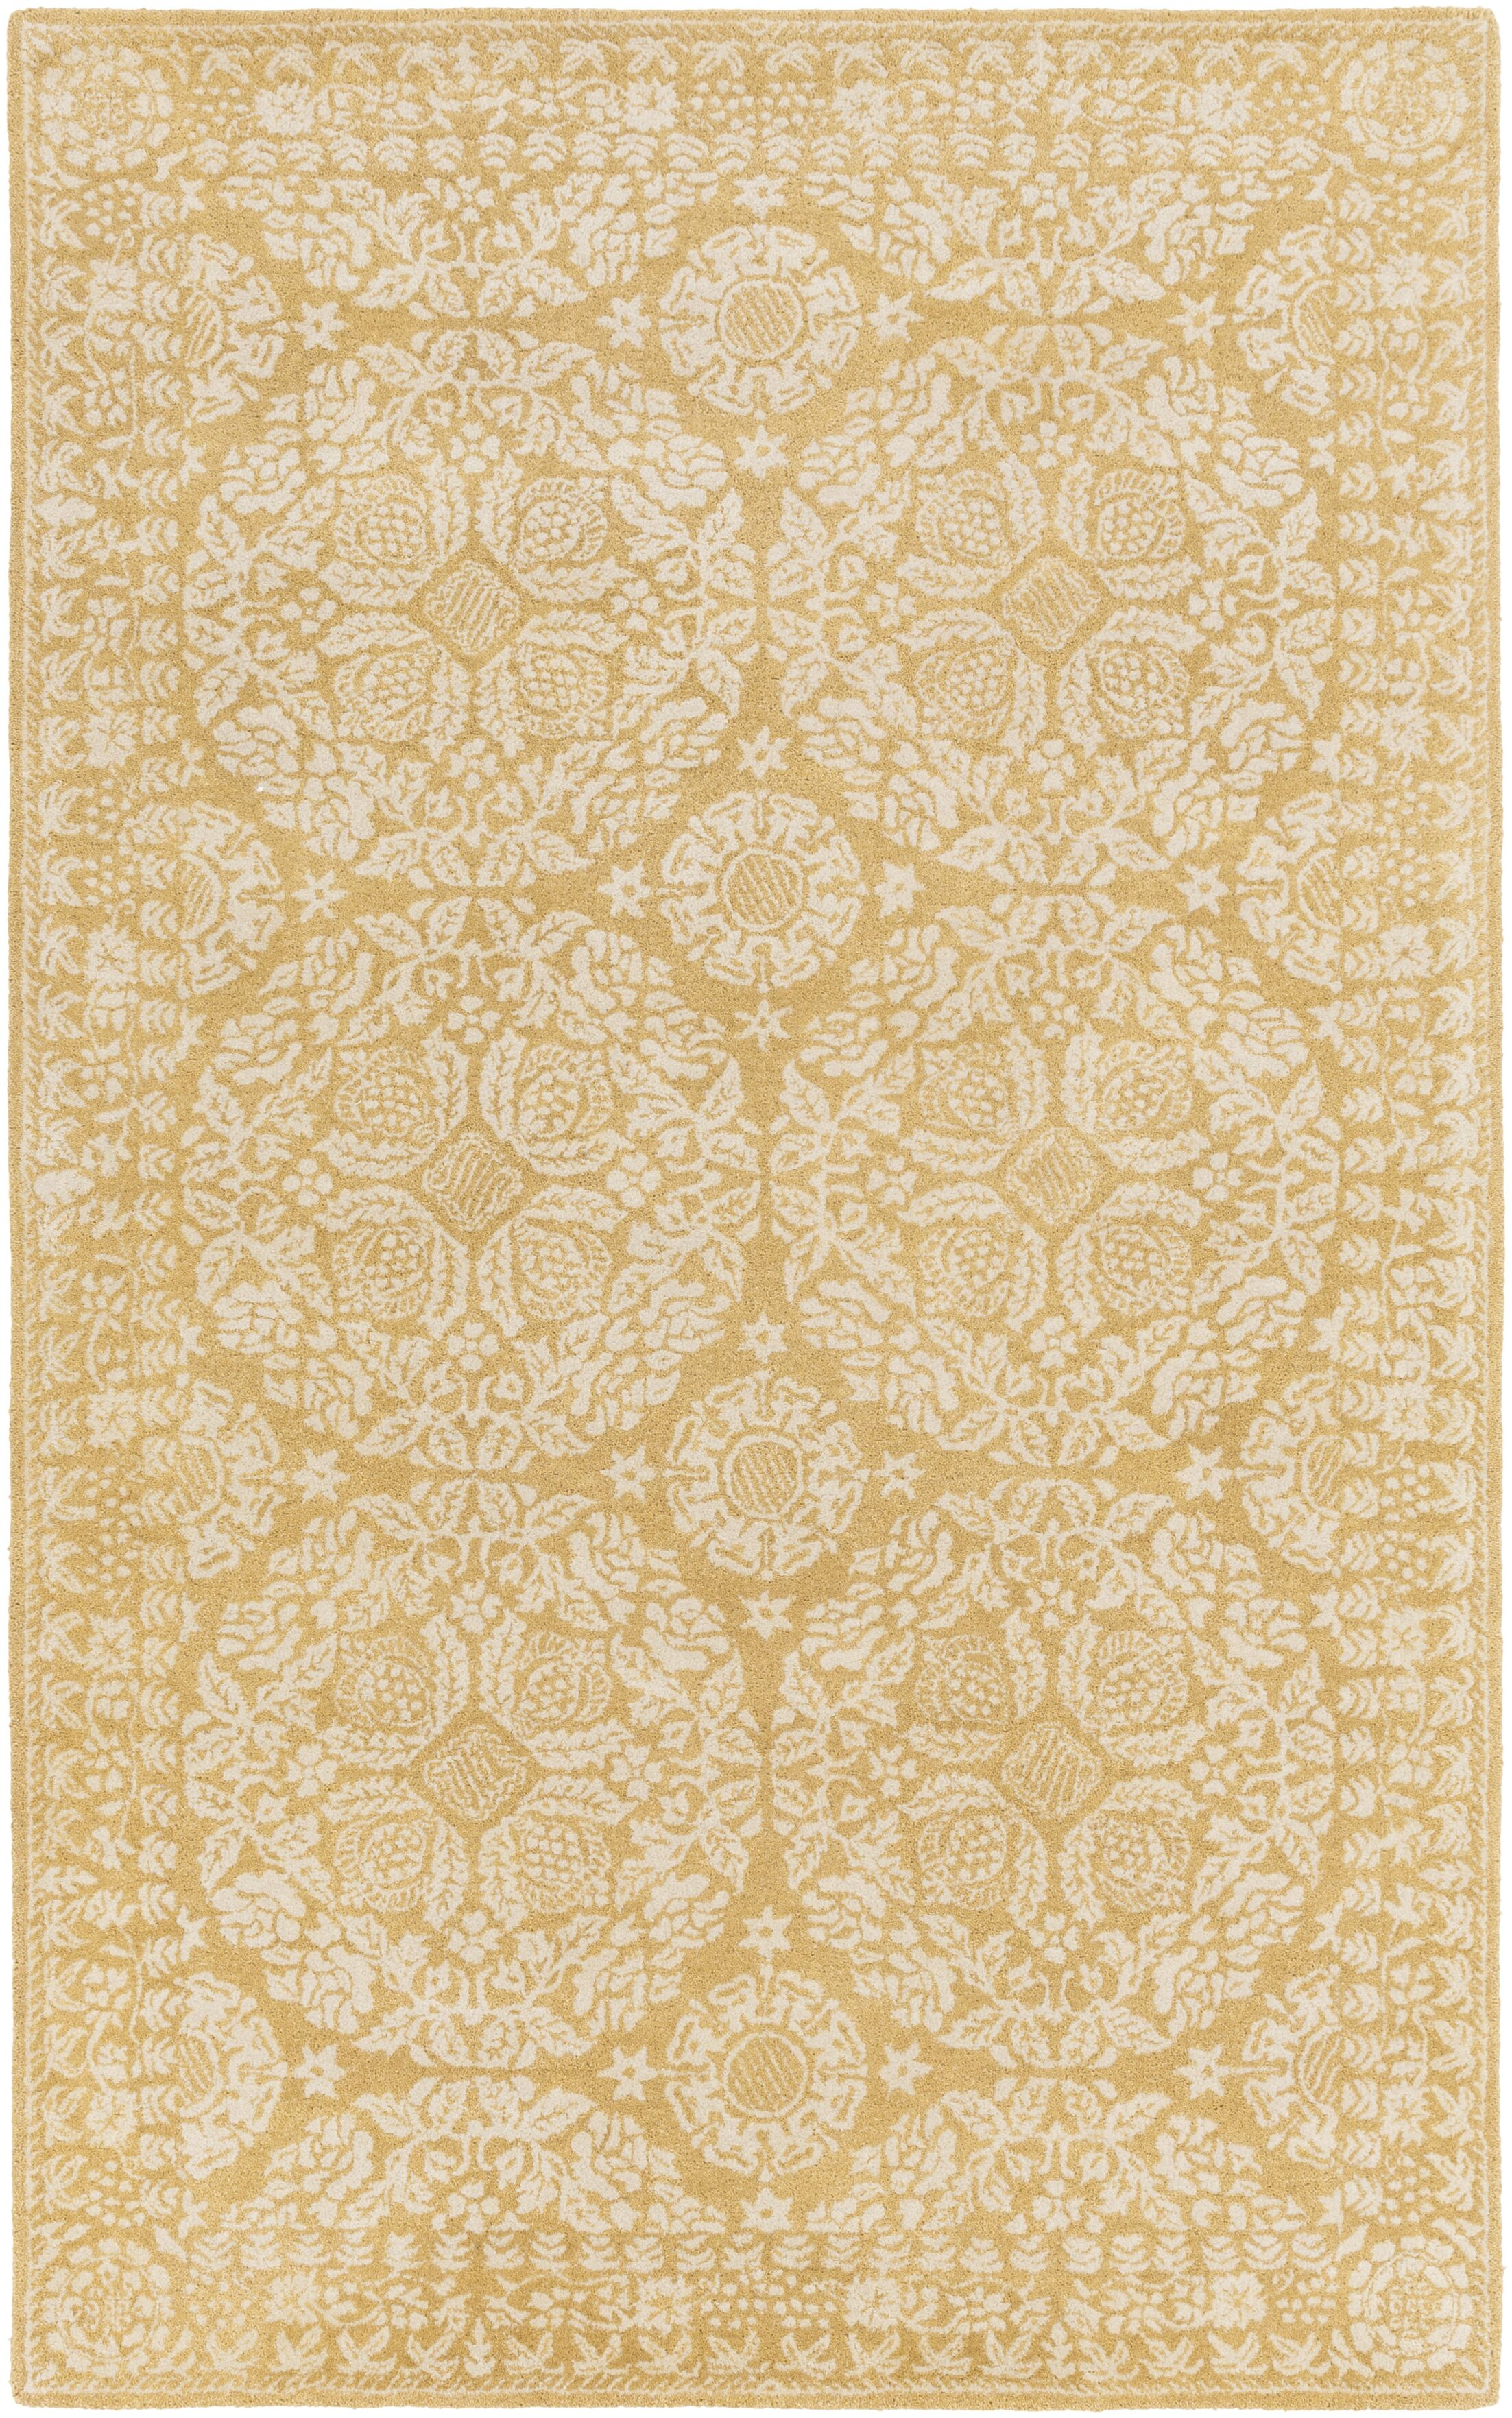 Smithsonian Hand-Tufted Yellow/Neutral Area Rug Rug Size: Runner 2'6